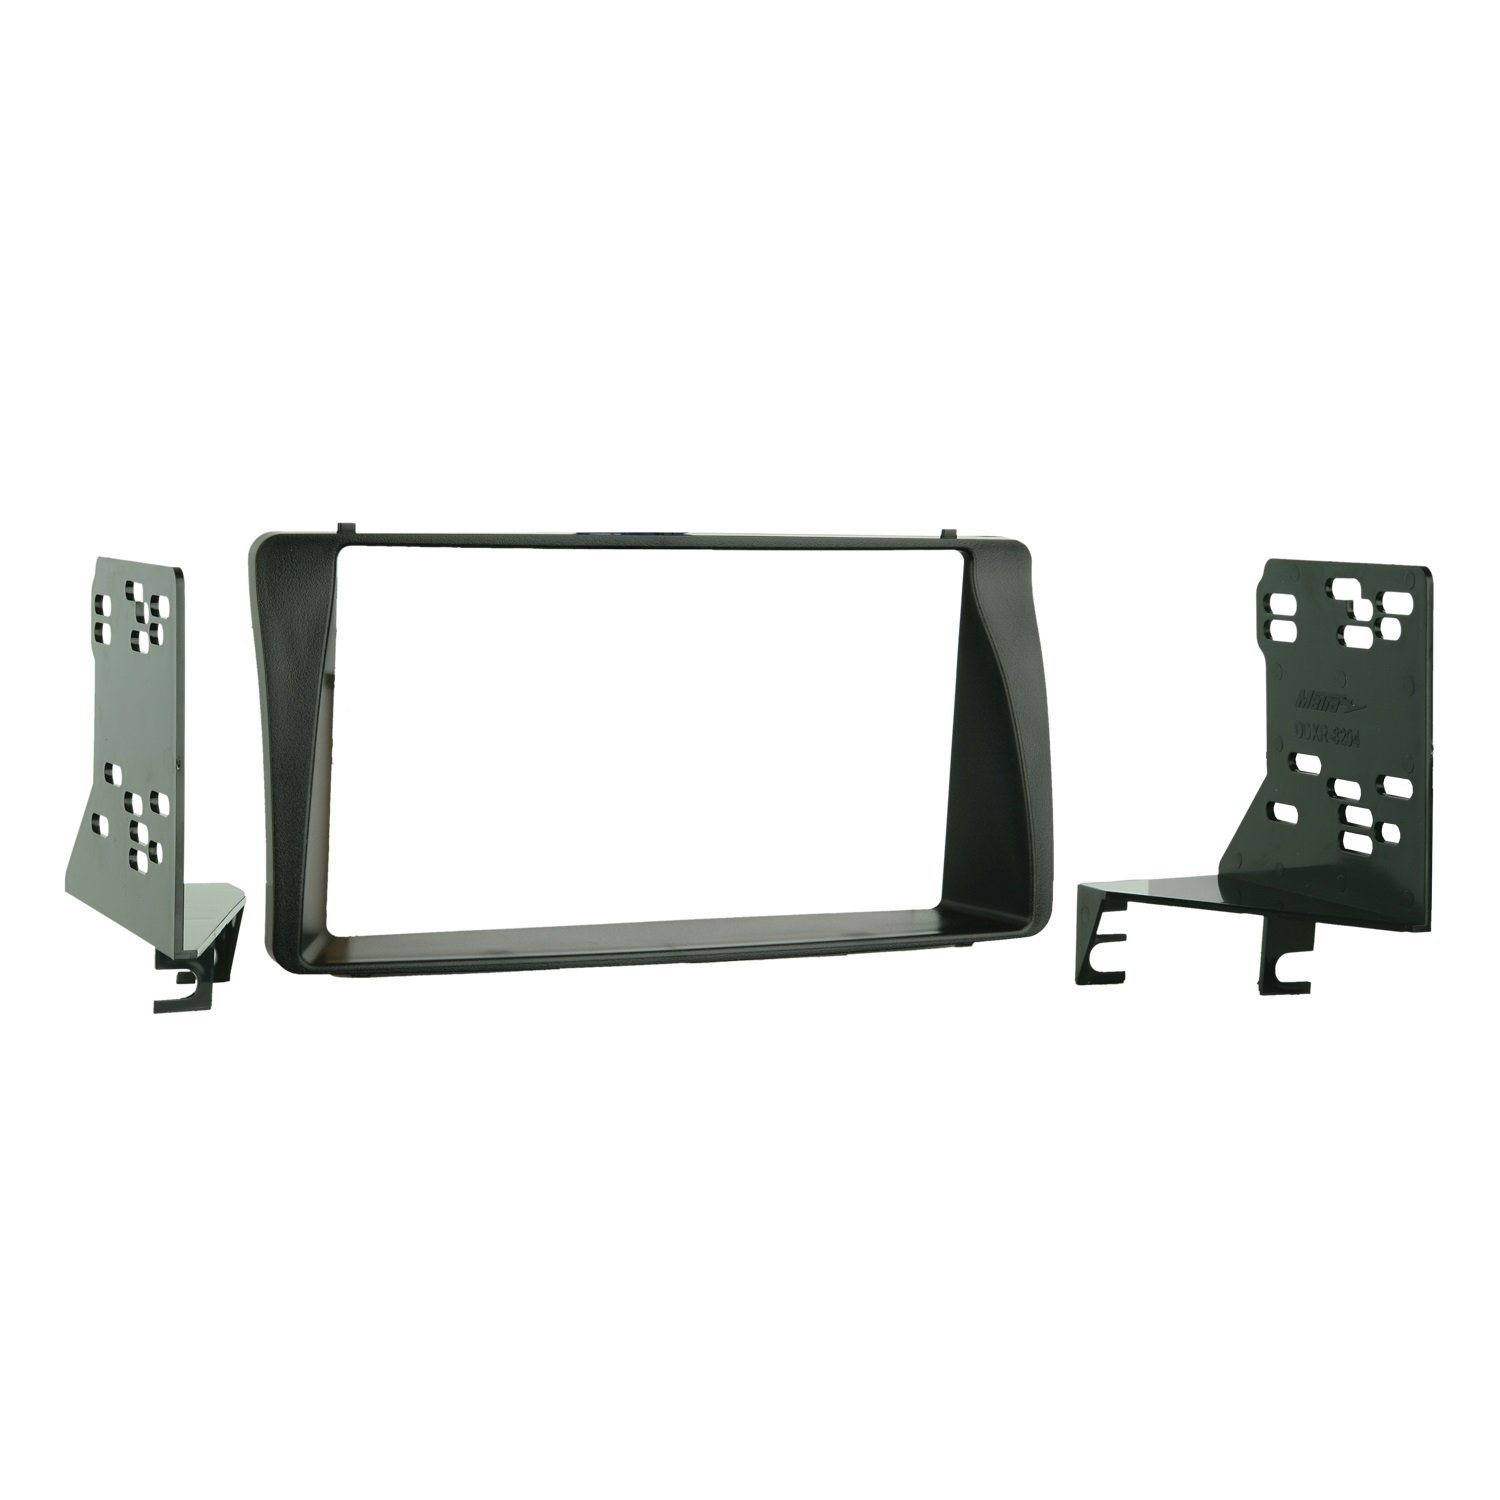 Metra 95-8204 Double DIN Installation Kit for 2003-up Toyota Corolla Vehicles